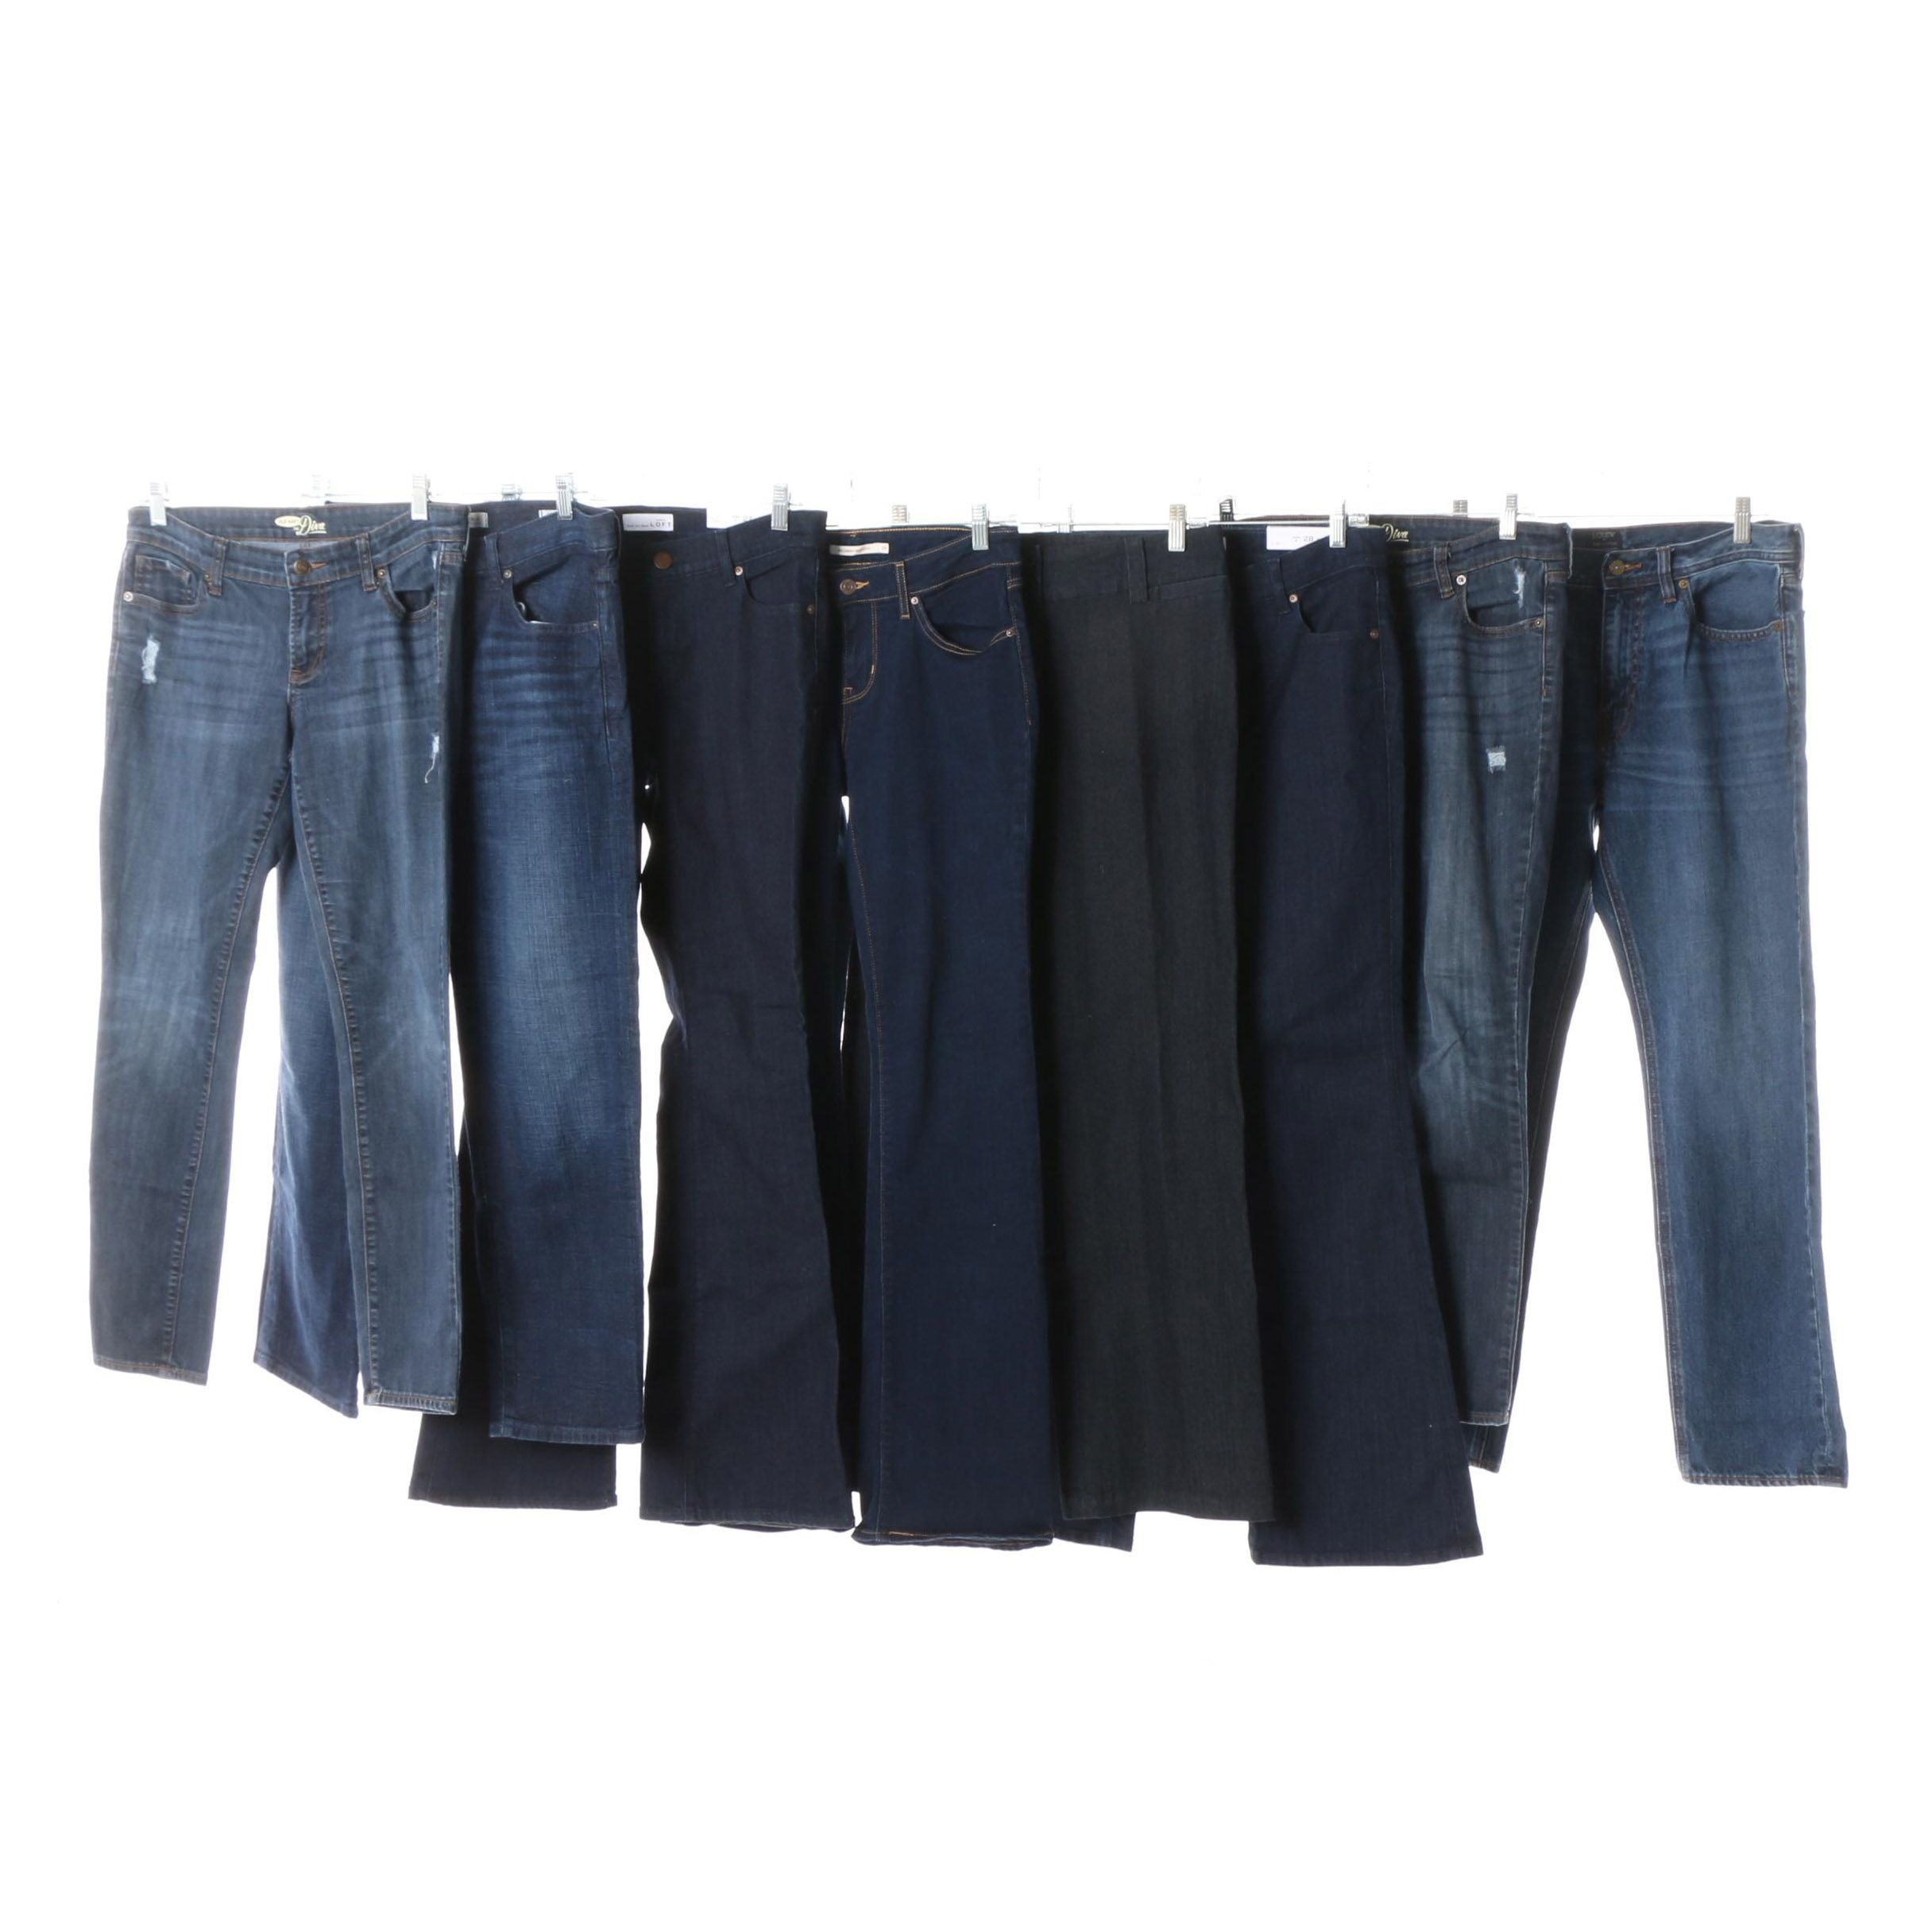 Women's Jeans including Levi's, J.Crew and Banana Republic